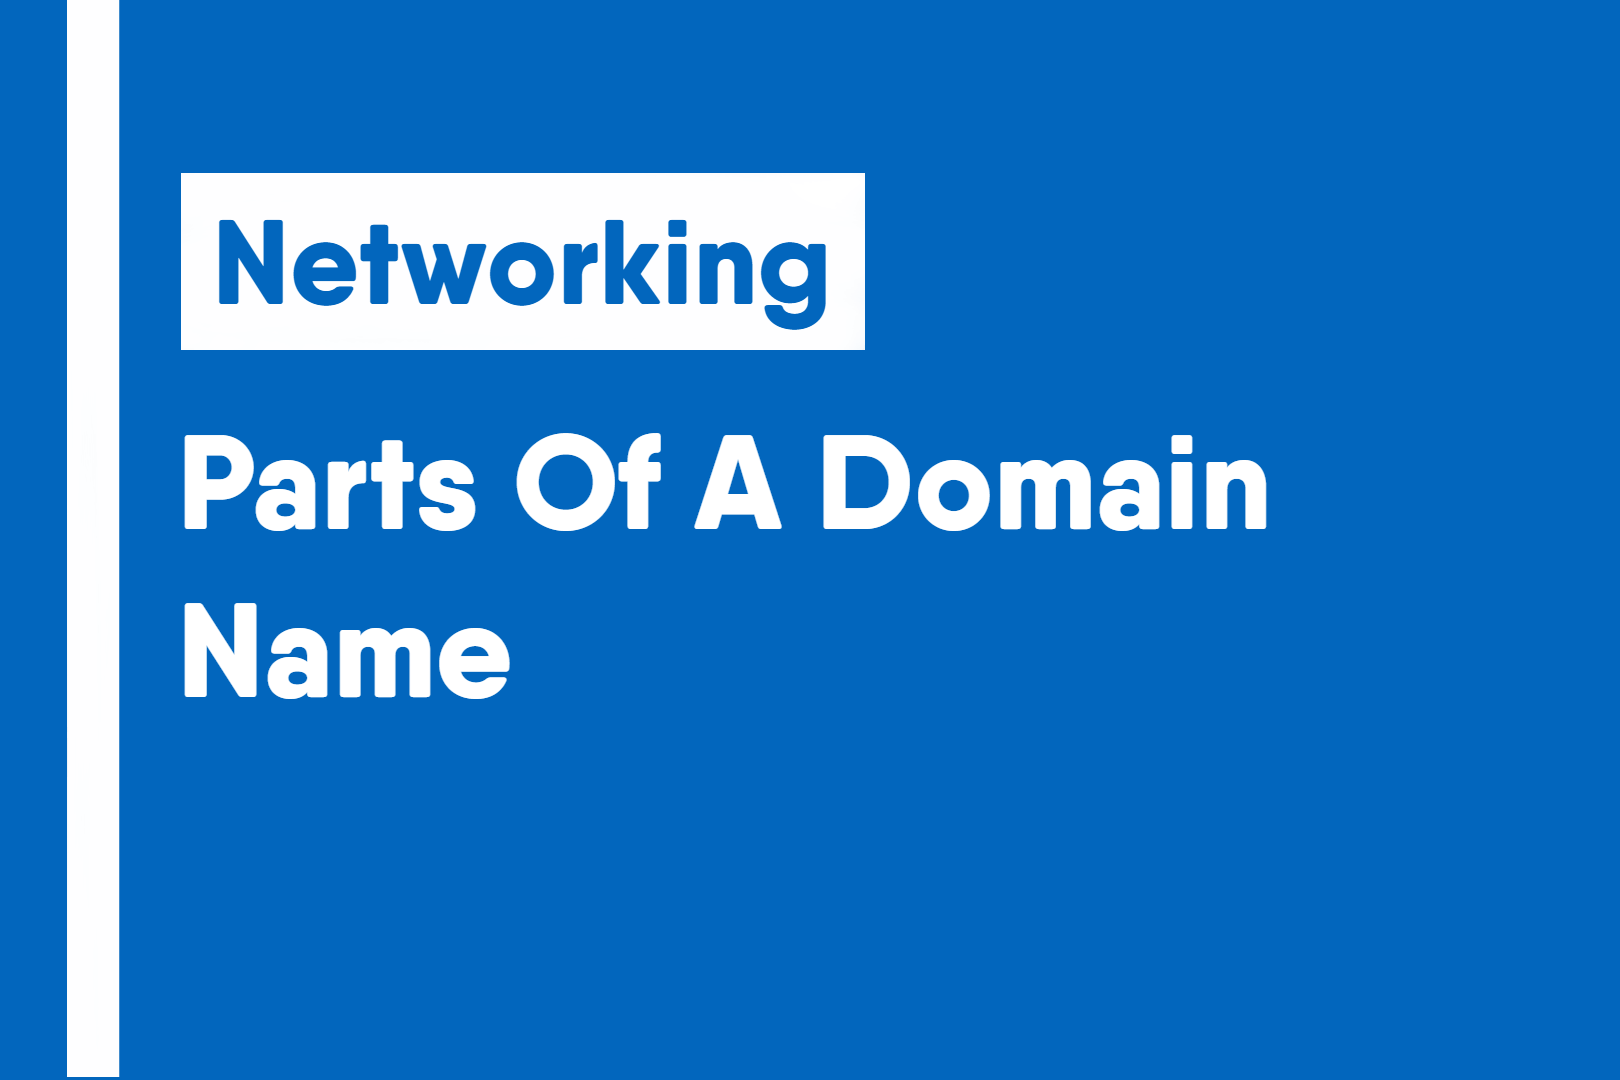 Parts Of A Domain Name